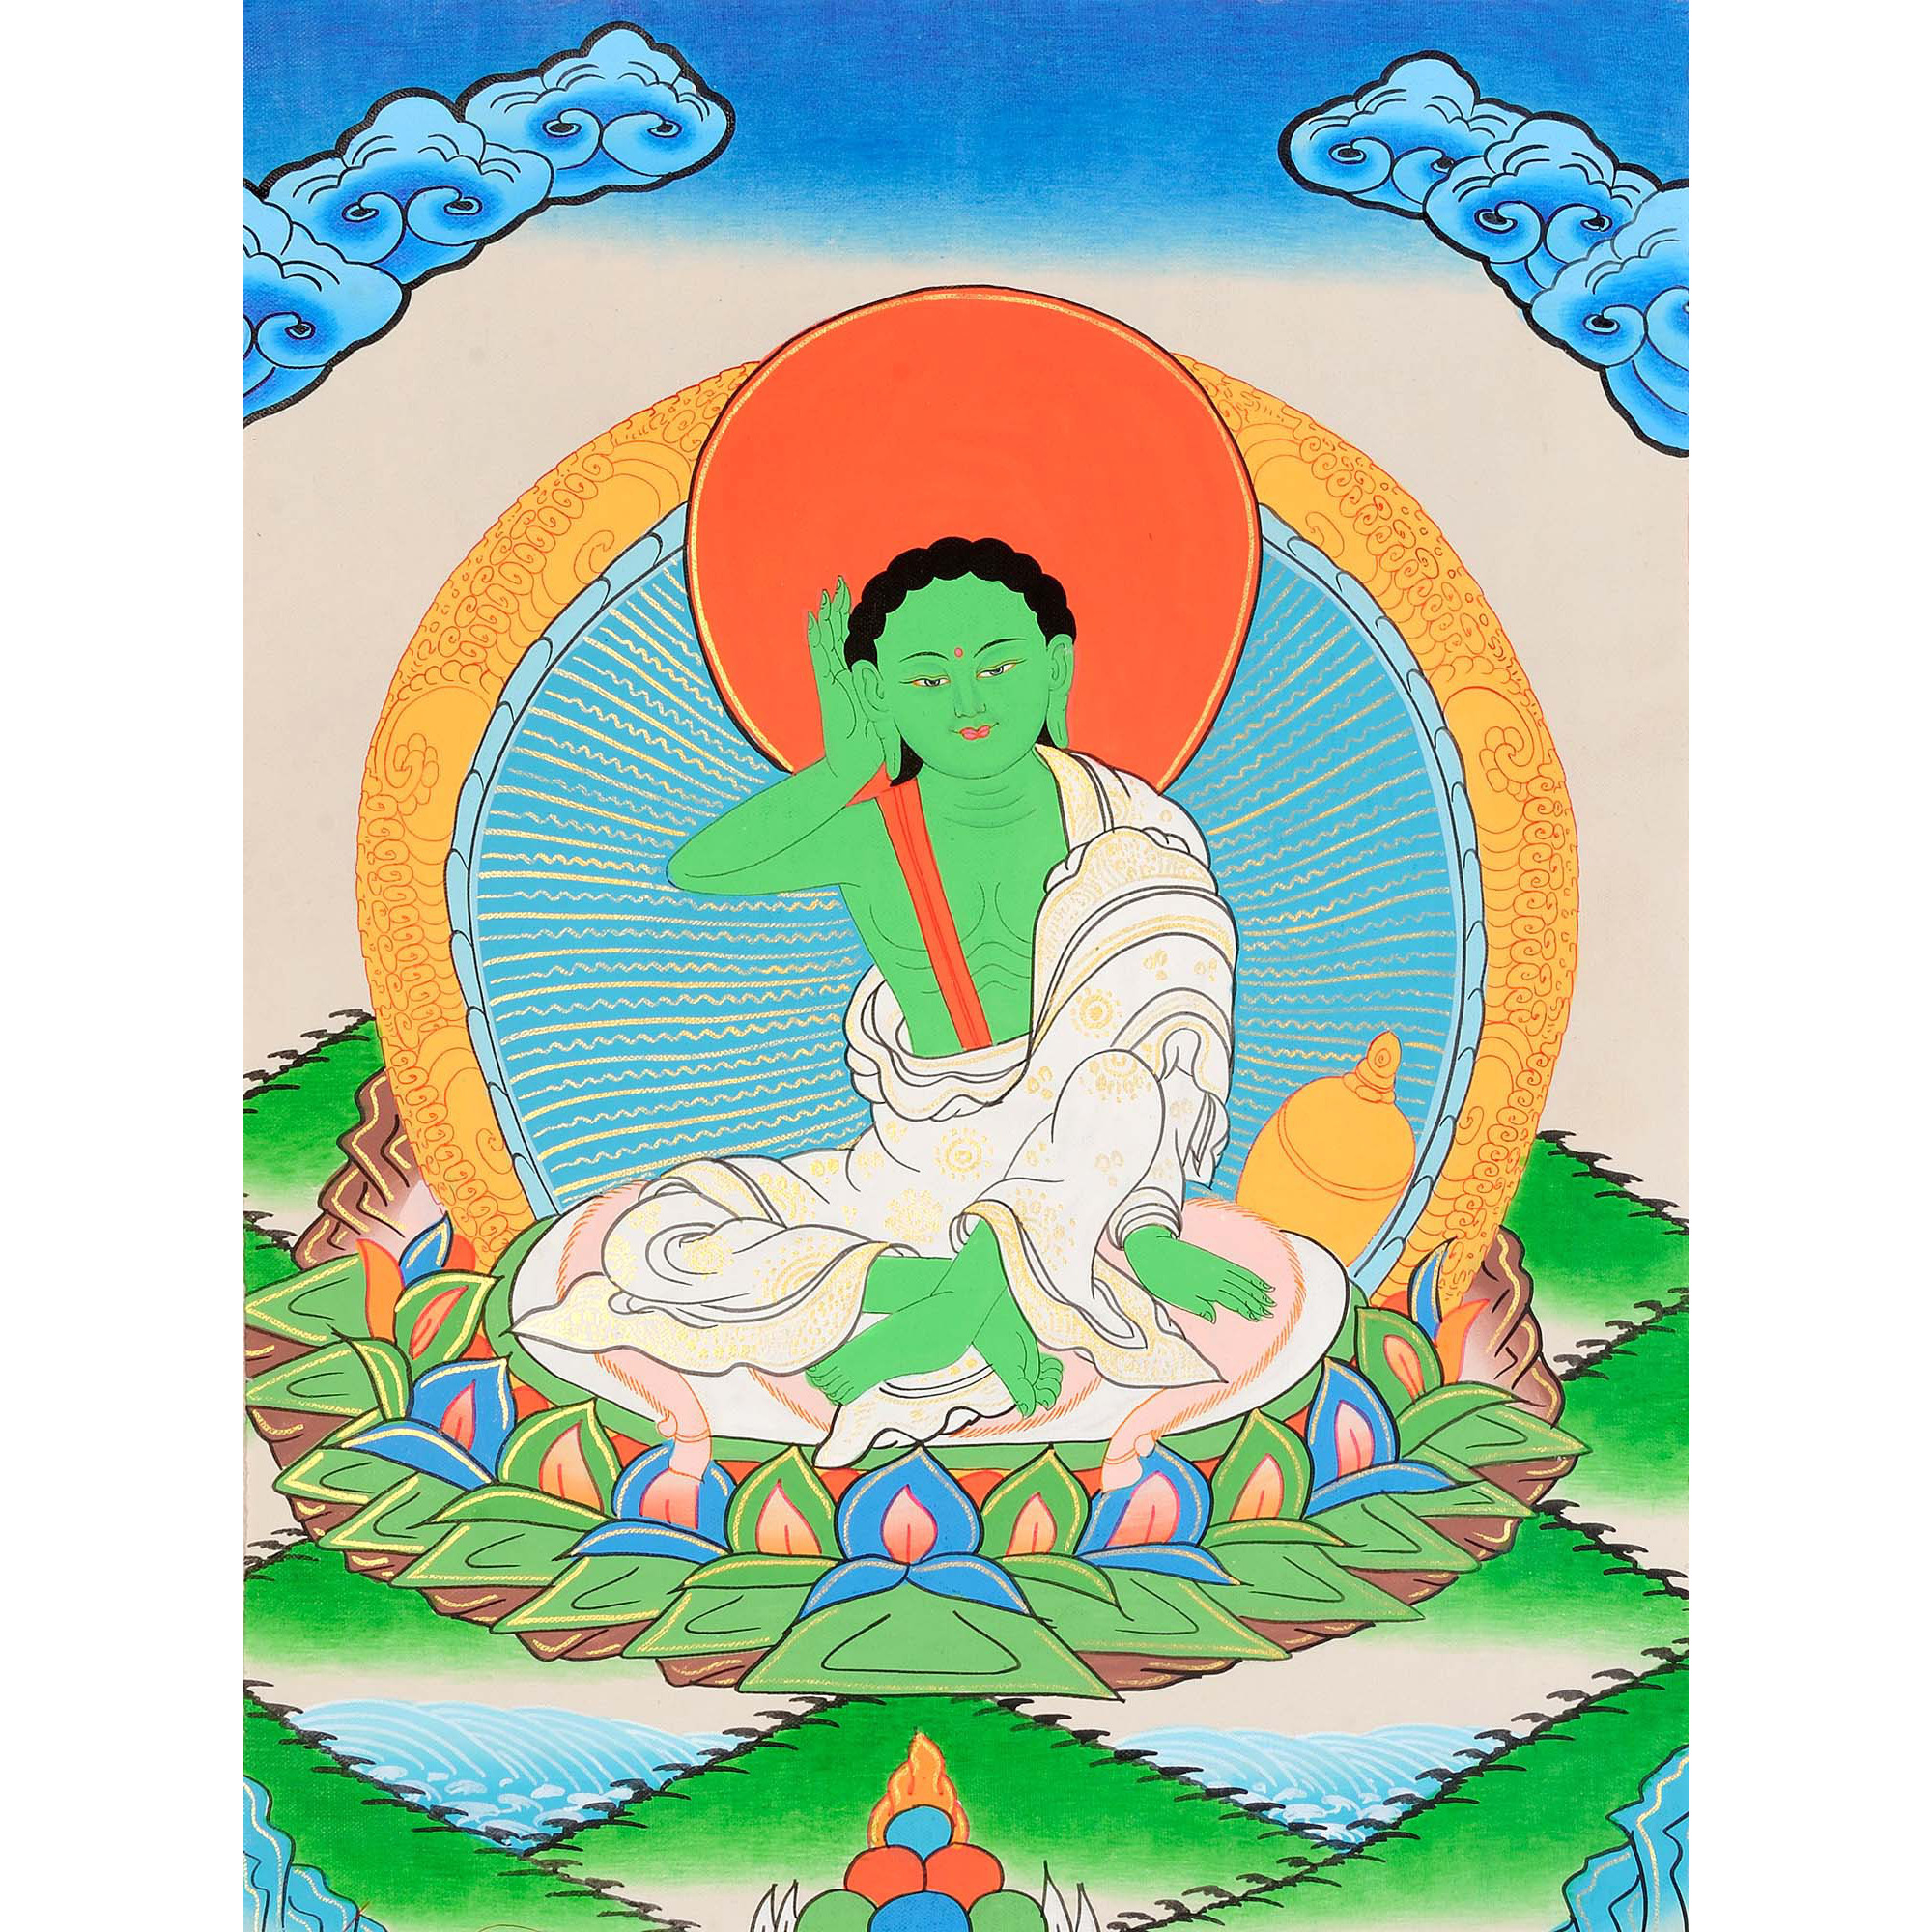 Milarepa - A Great Mystic Poet, Singer and Siddha of Tibet -Tibetan Buddhist